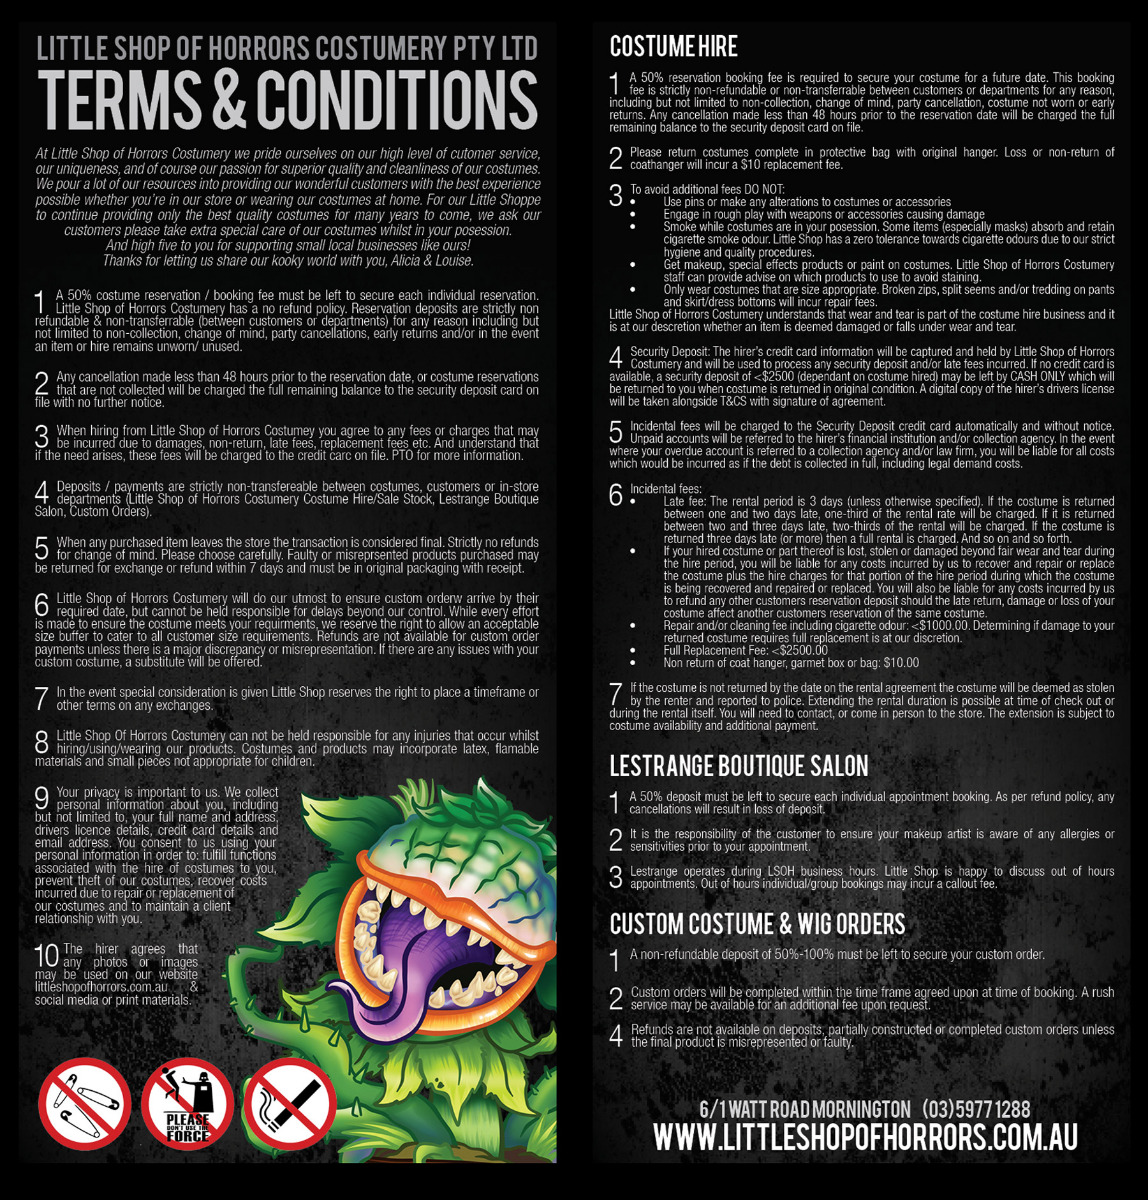 Little Shop of Horrors Terms & Conditions